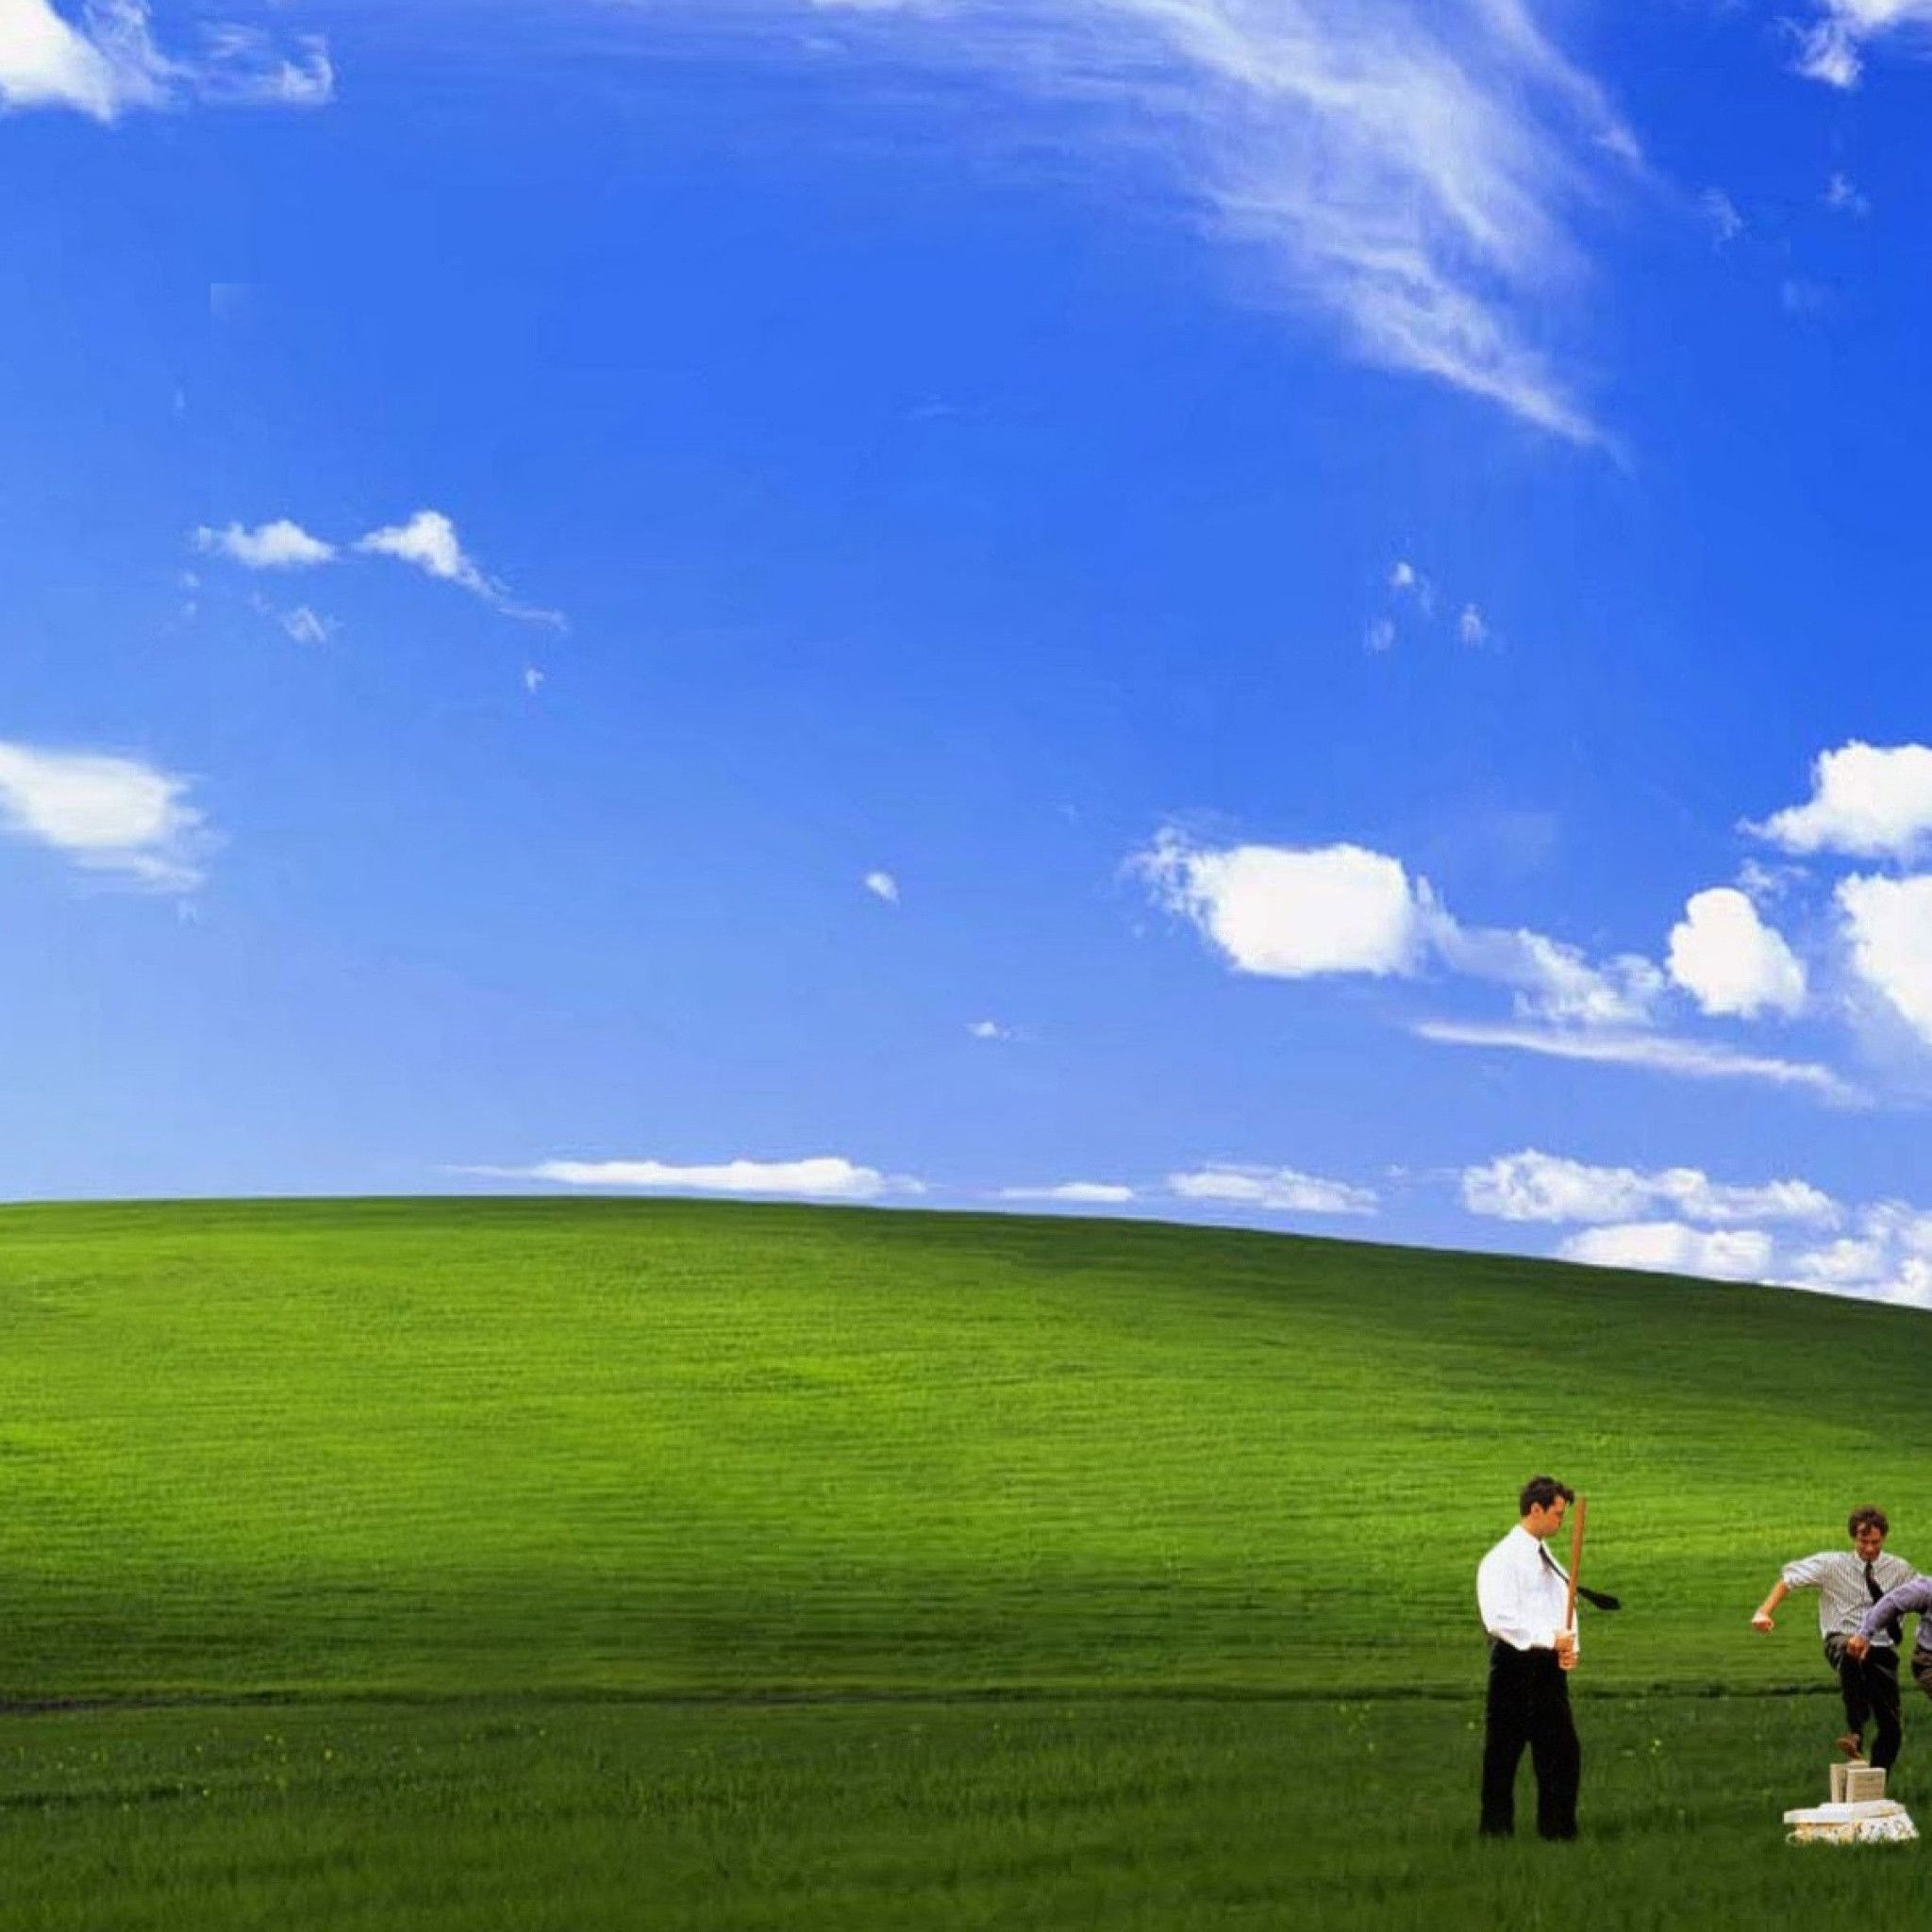 Wallpapers Screensavers Windows XP 45 images 2048x2048